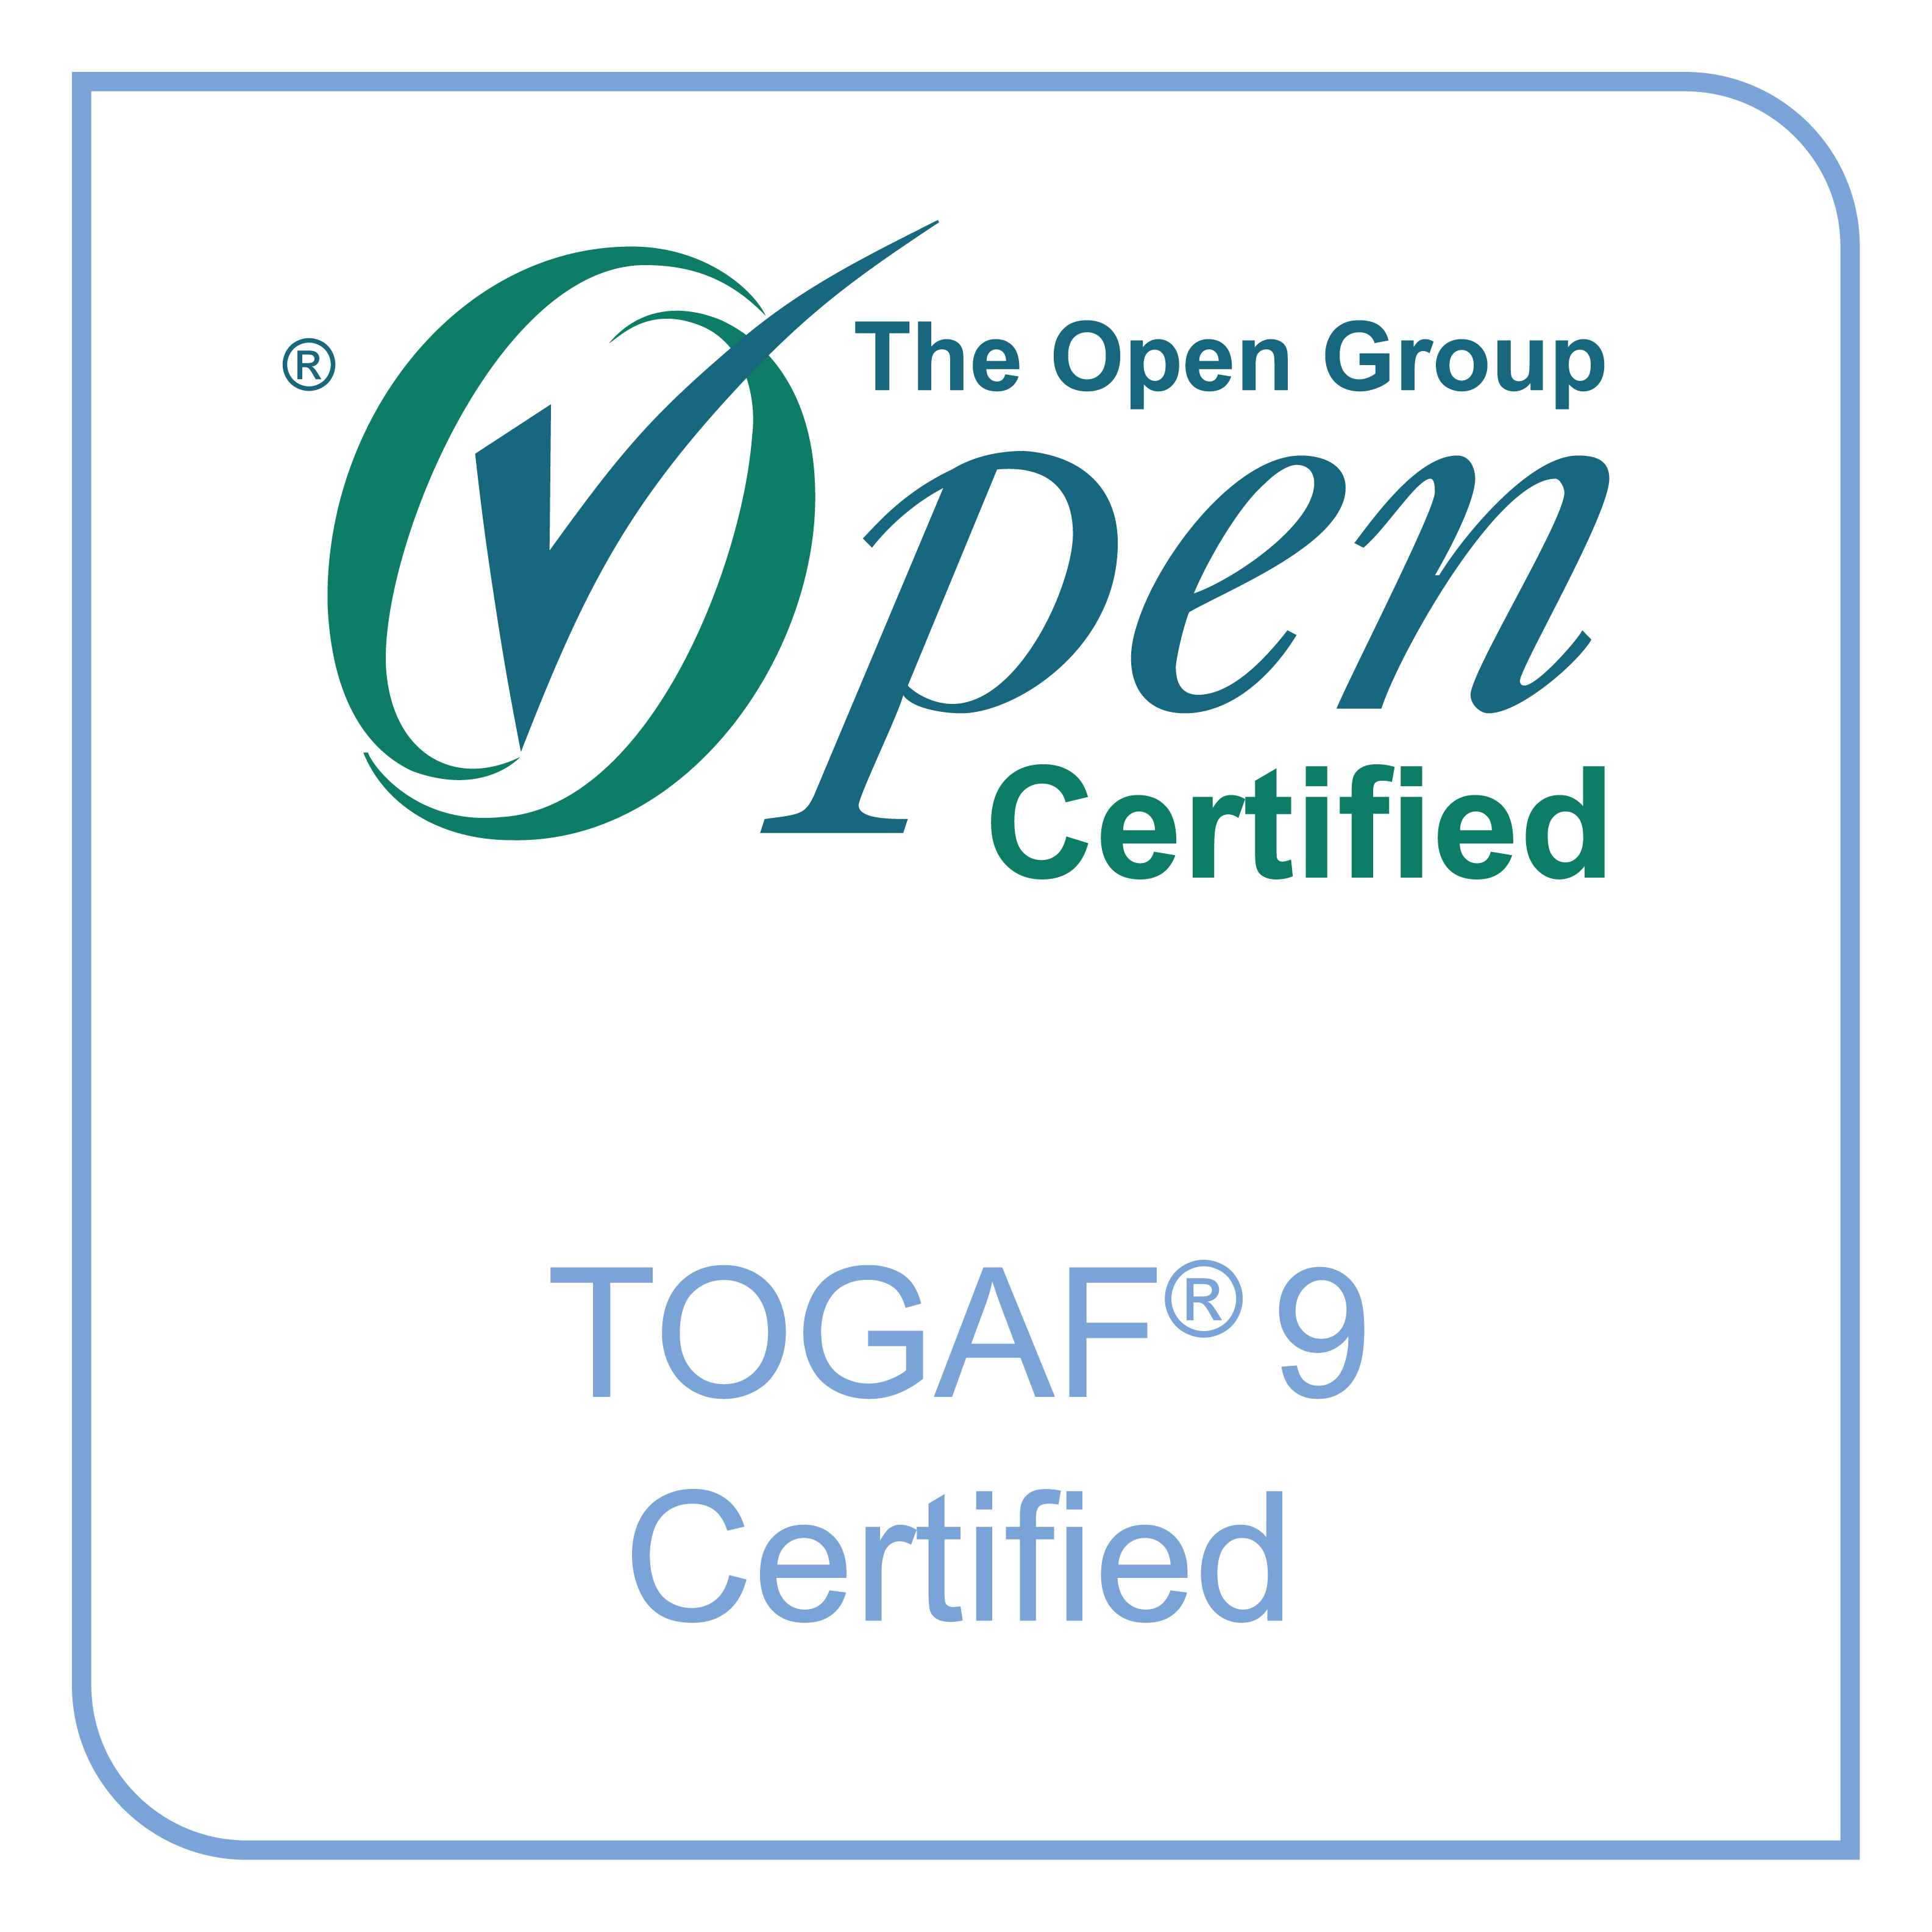 The Open Group Certified: TOGAF 9 Certified